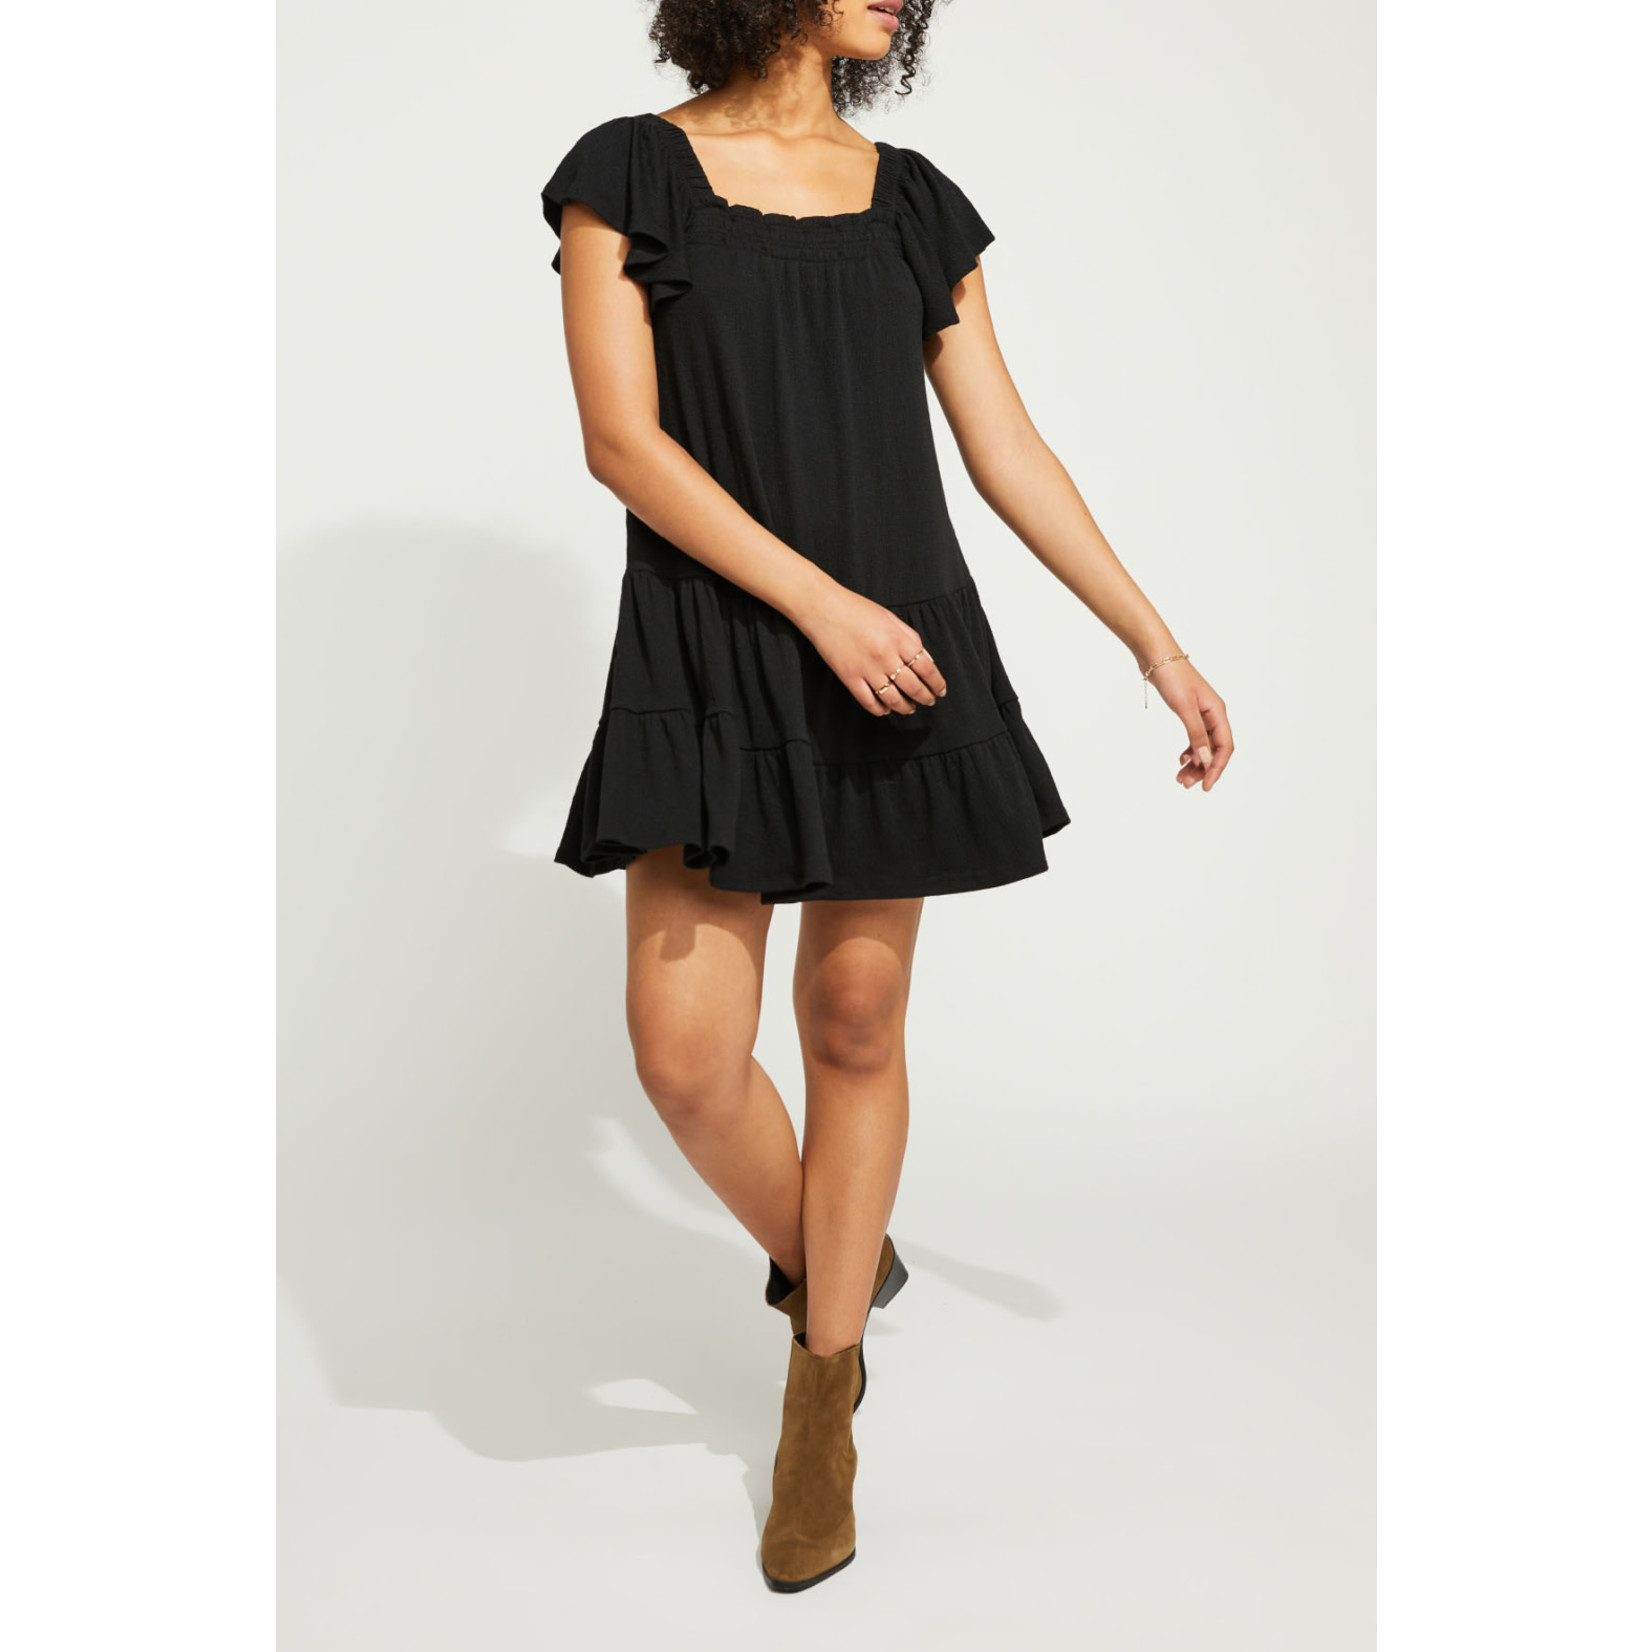 Gentle Fawn Textured Square Neck Dress